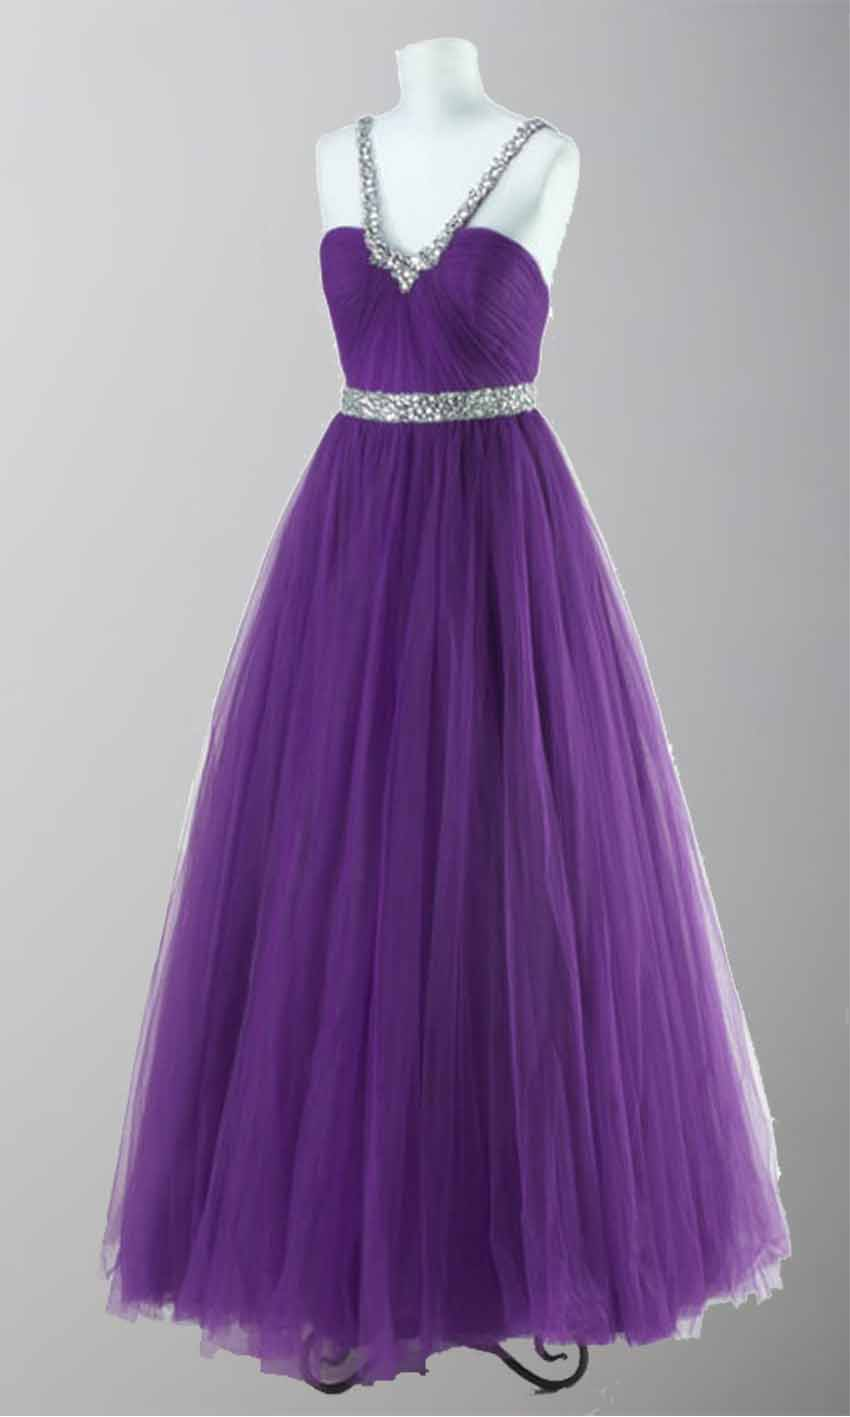 V-Neck Long Tulle Sequin Prom Dress KSP109 [KSP109] - £115.00 : Cheap Prom Dresses Uk, Bridesmaid Dresses, 2014 Prom & Evening Dresses, Look for cheap elegant prom dresses 2014, cocktail gowns, or dresses for special occasions? kissprom.co.uk offers various bridesmaid dresses, evening dress, free shipping to UK etc.